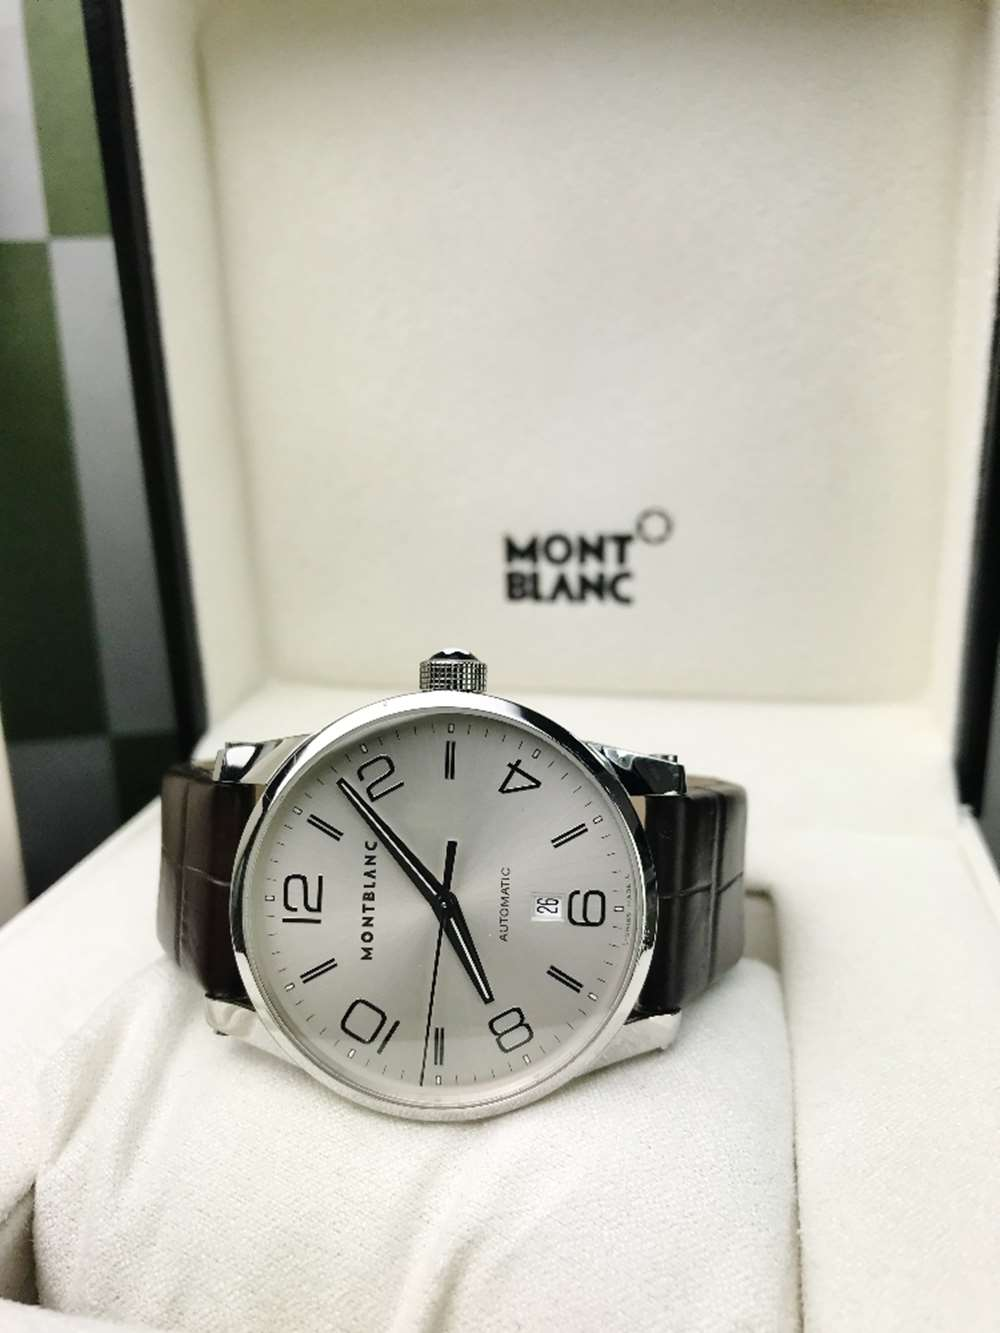 Lot 4 - Montblanc Timewalker, Automatic, Brown Alligator Strap, Serviced By MB